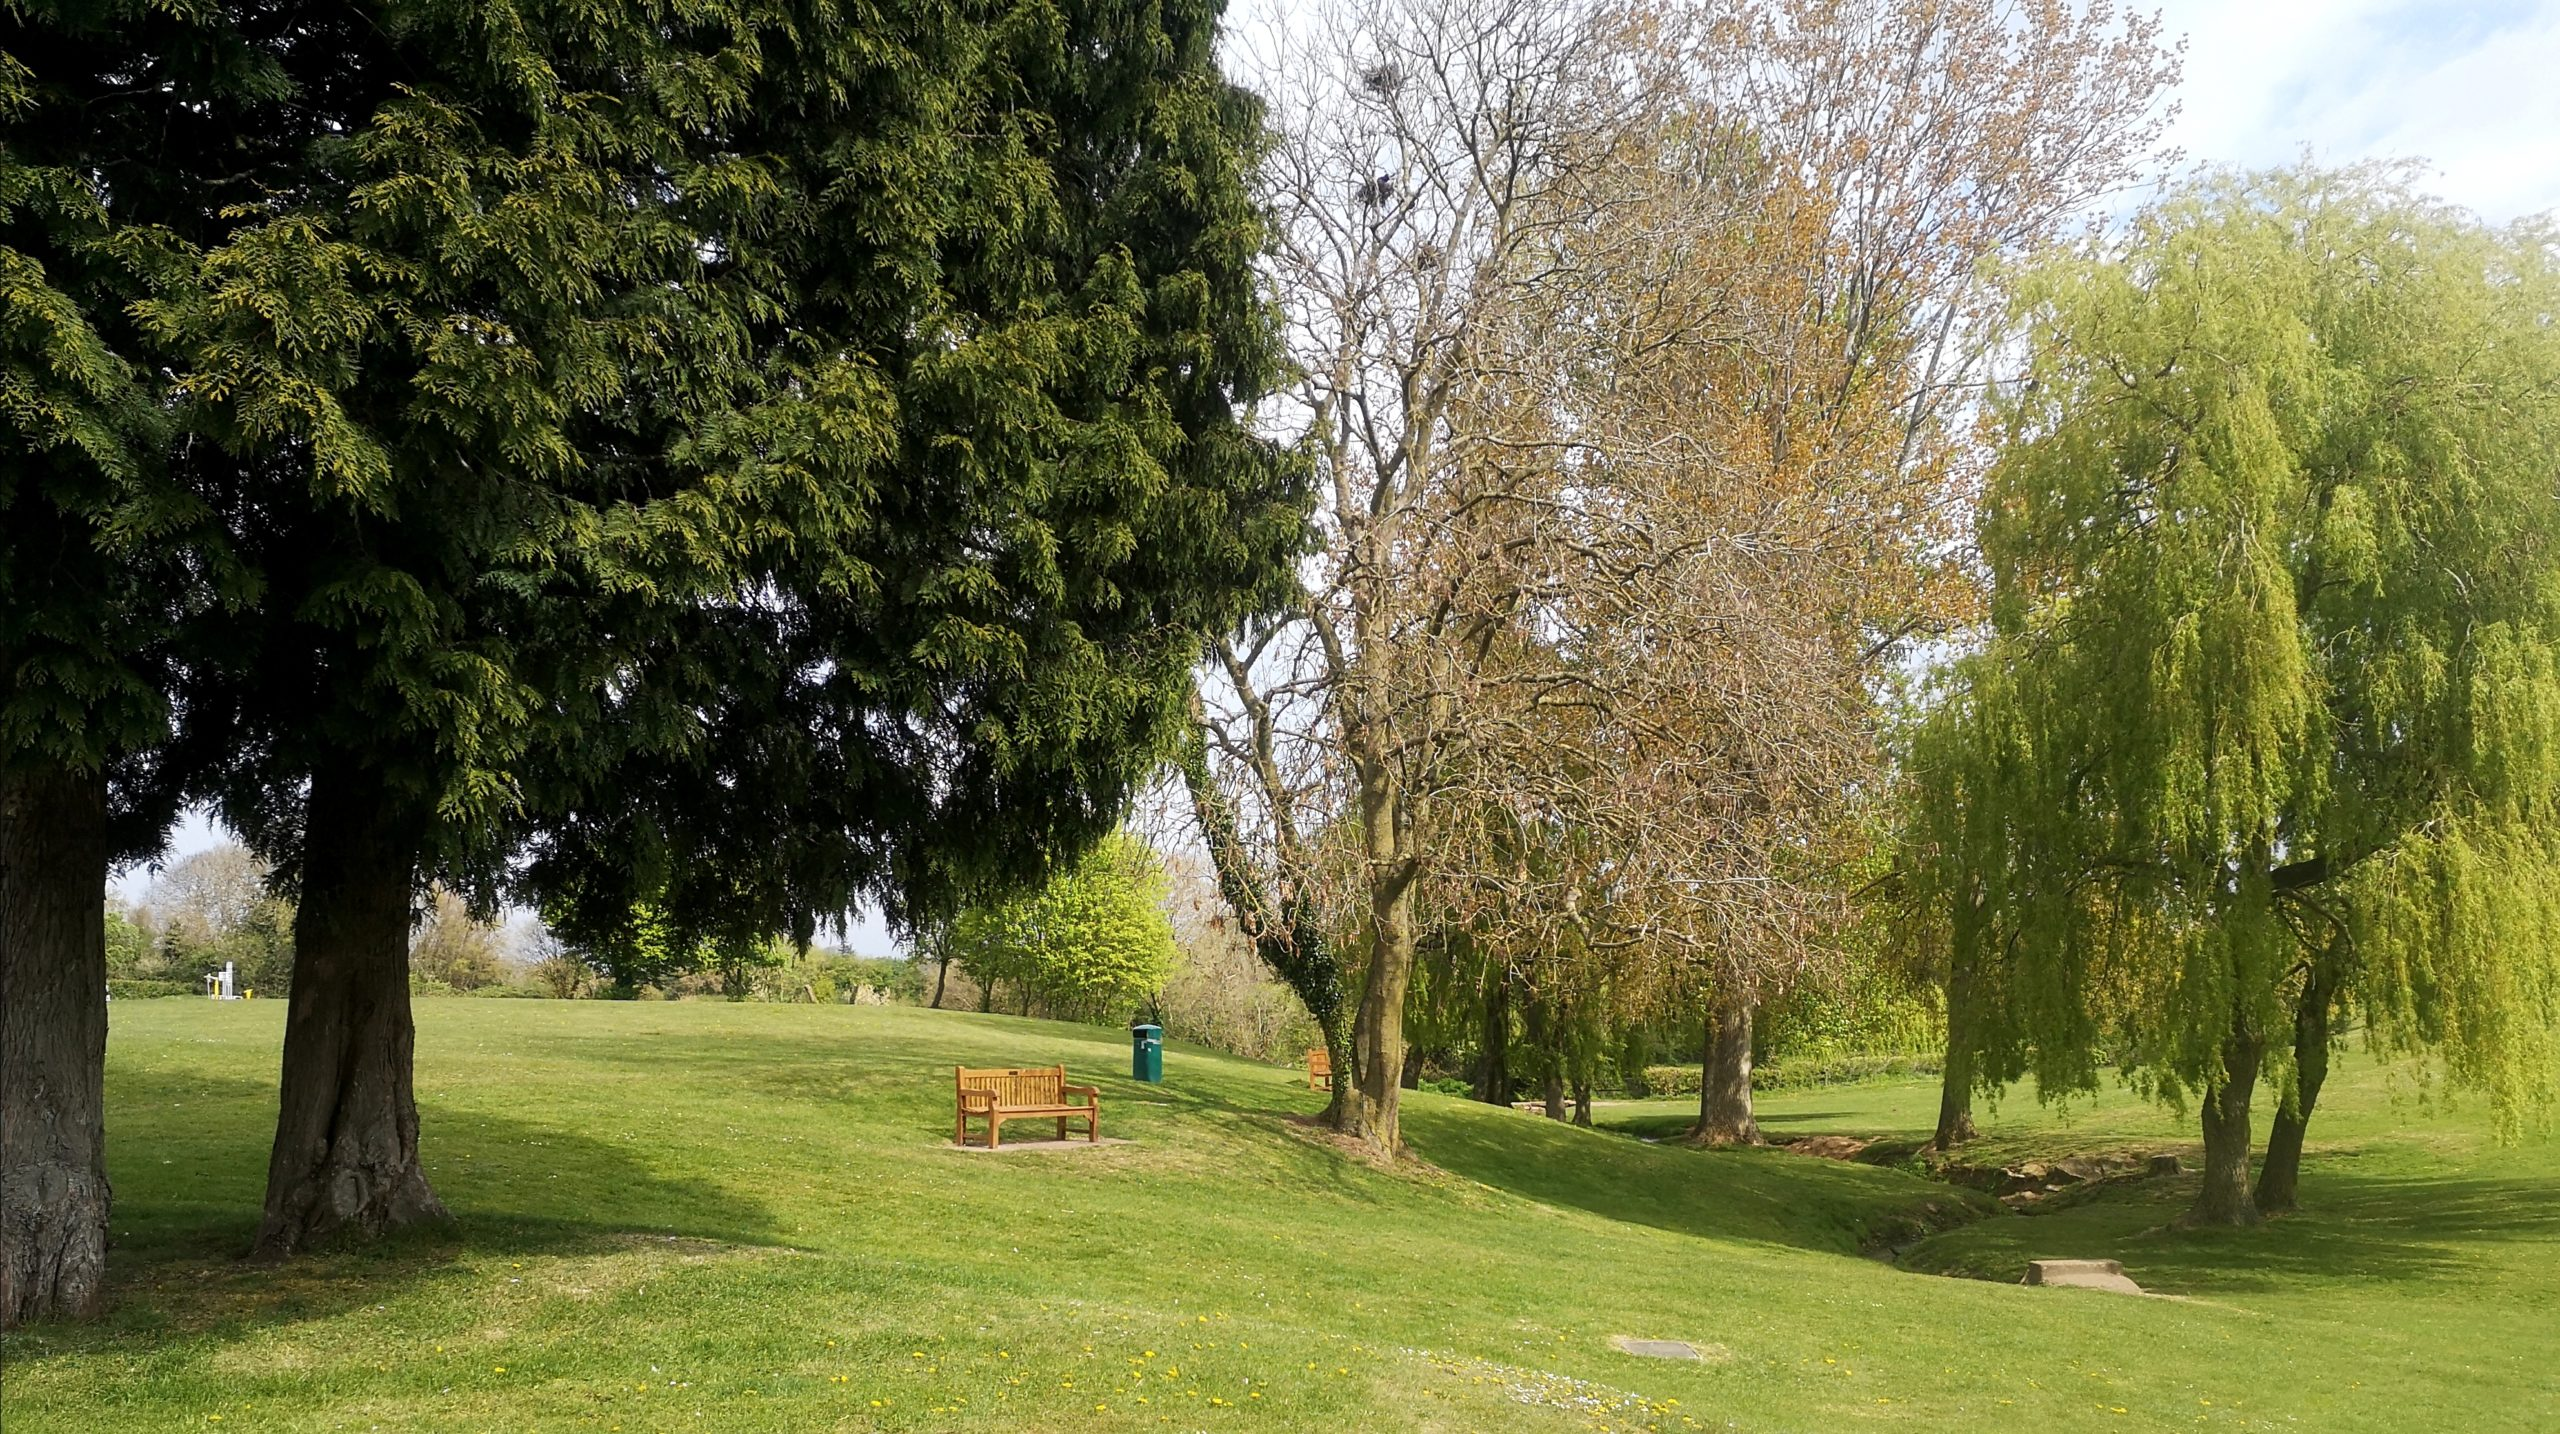 Trees at the Mundy Playing Fields